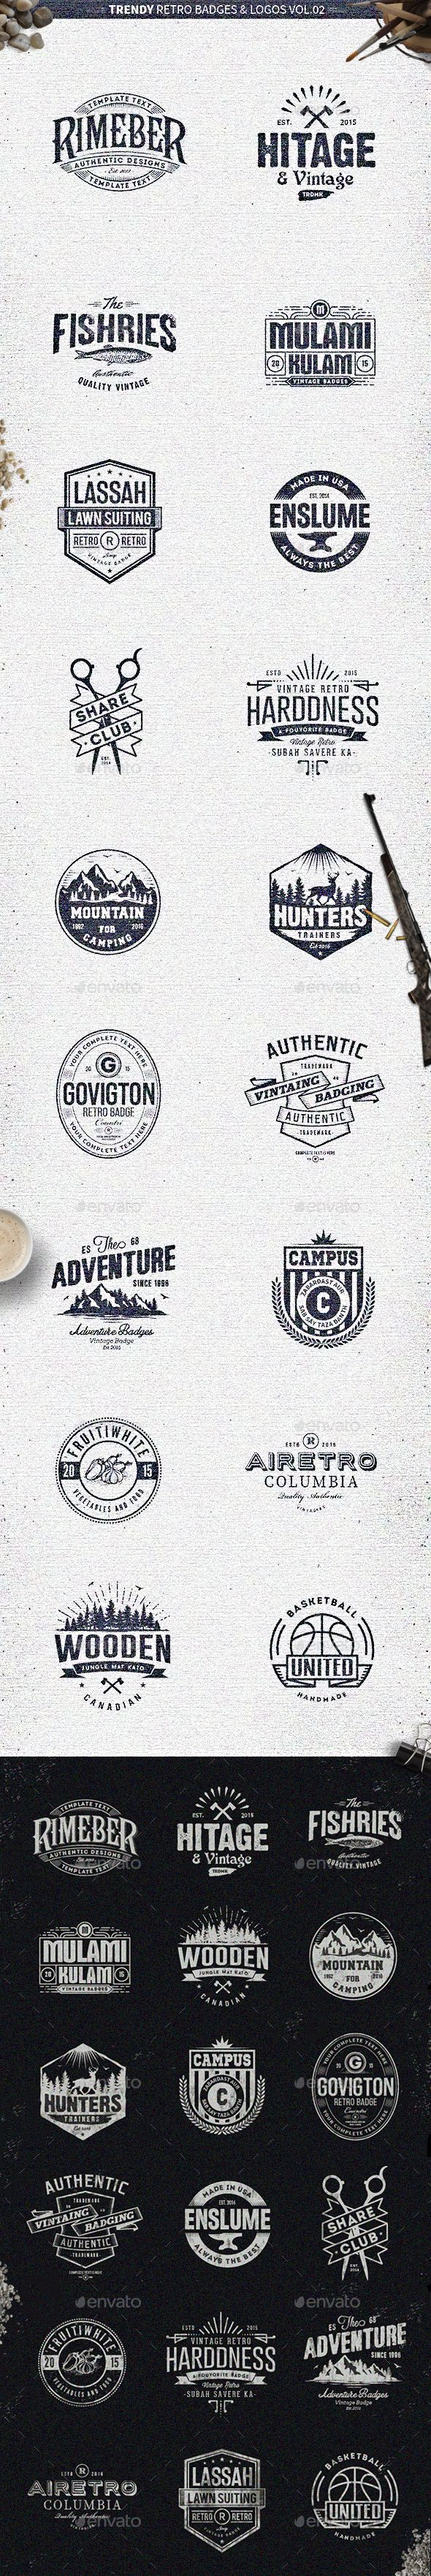 18 Trendy Retro Badges and Logos Templates Vector EPS, AI Illustrator. Download here: http://graphicriver.net/item/18-trendy-retro-badges-and-logos-vol02/16588768?ref=ksioks